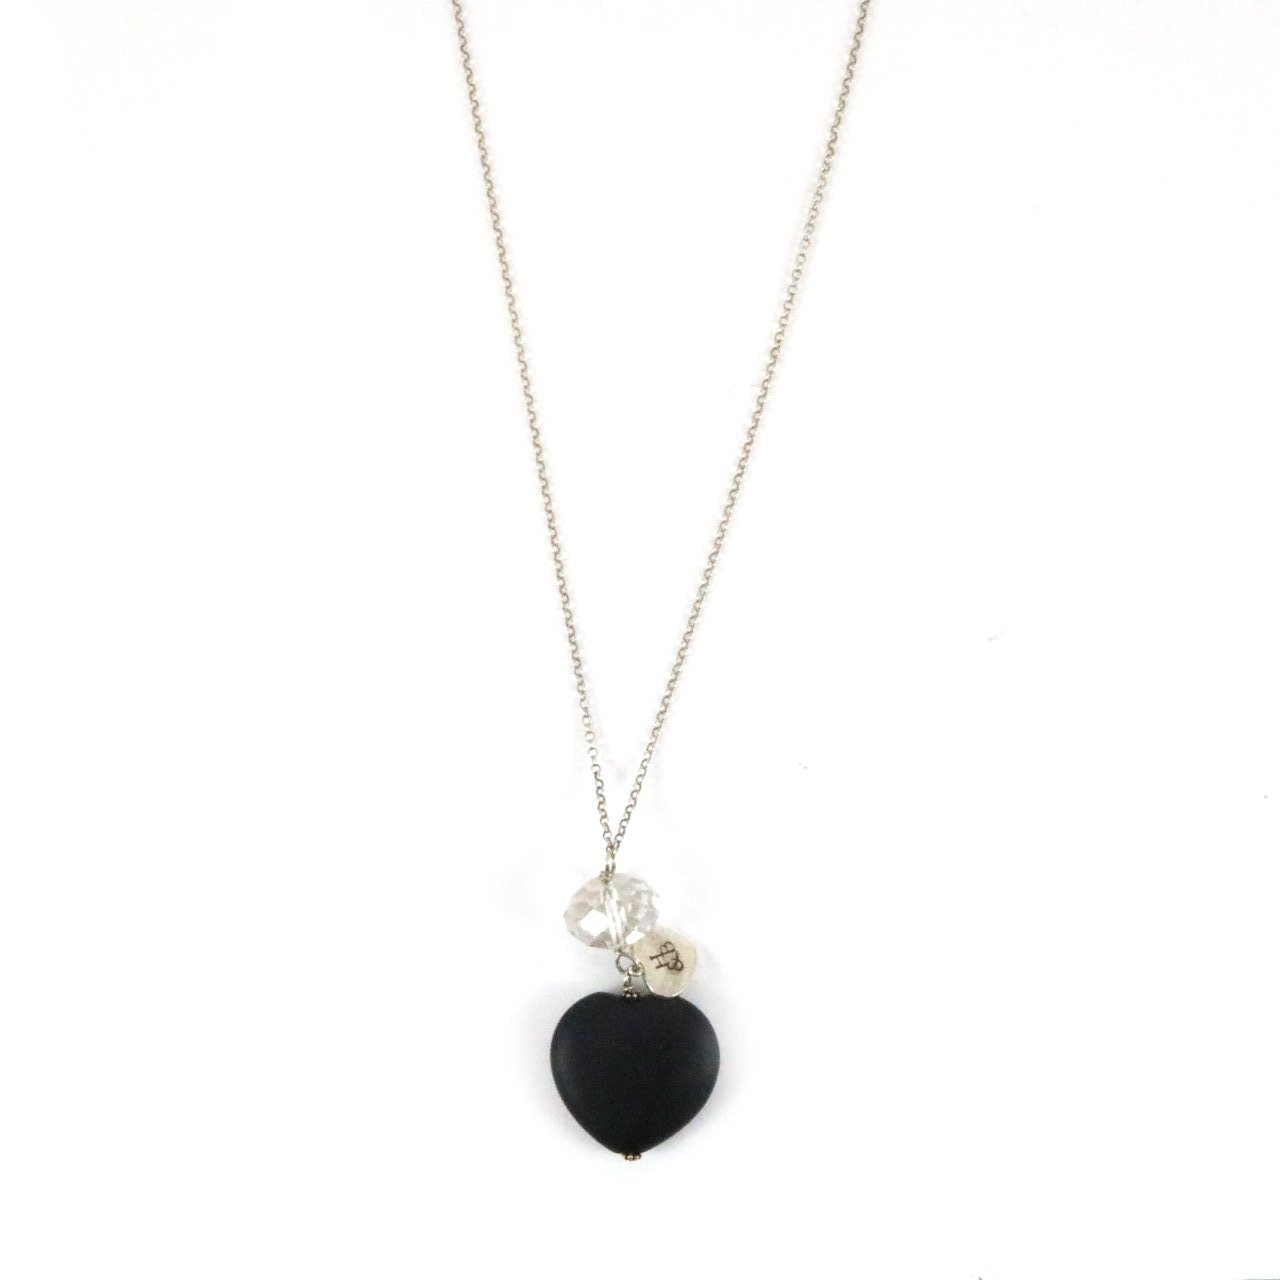 Wooden Black Heart with Crystal Silver Necklace